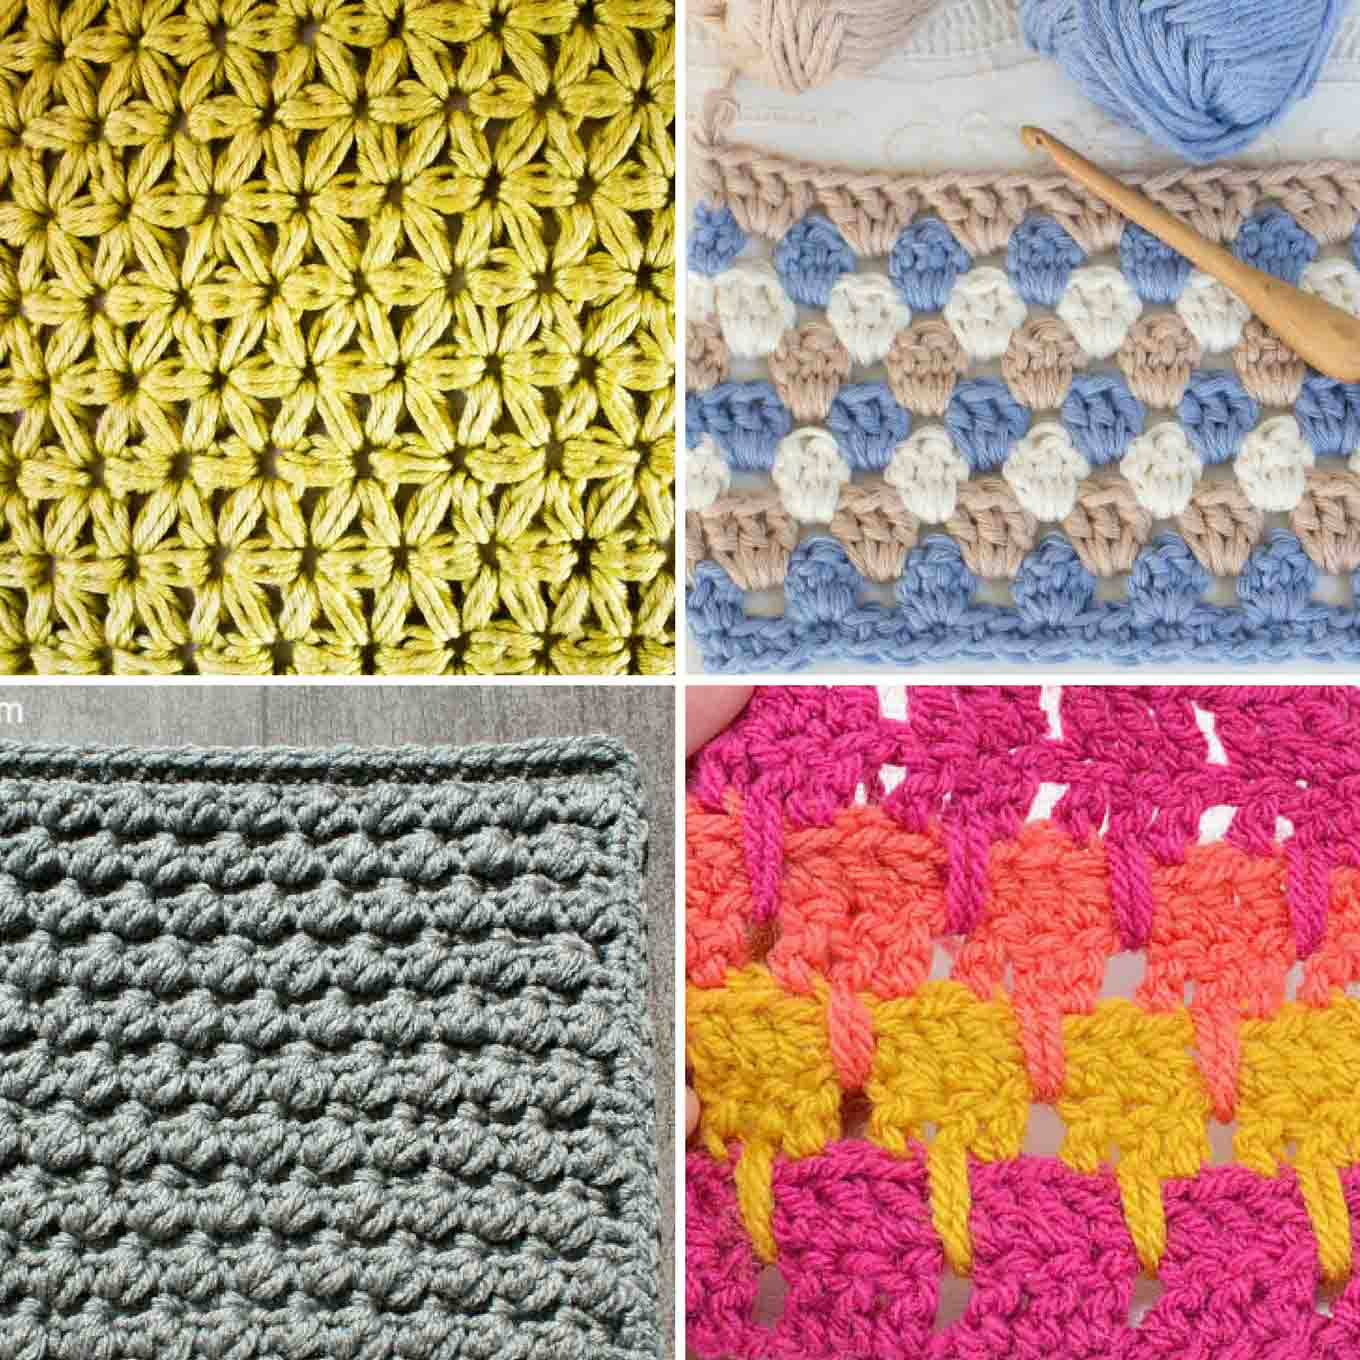 Awesome 25 Crochet Stitches for Blankets and Afghans Make & Do Crew Single Stitch Crochet Blanket Of Marvelous 48 Images Single Stitch Crochet Blanket